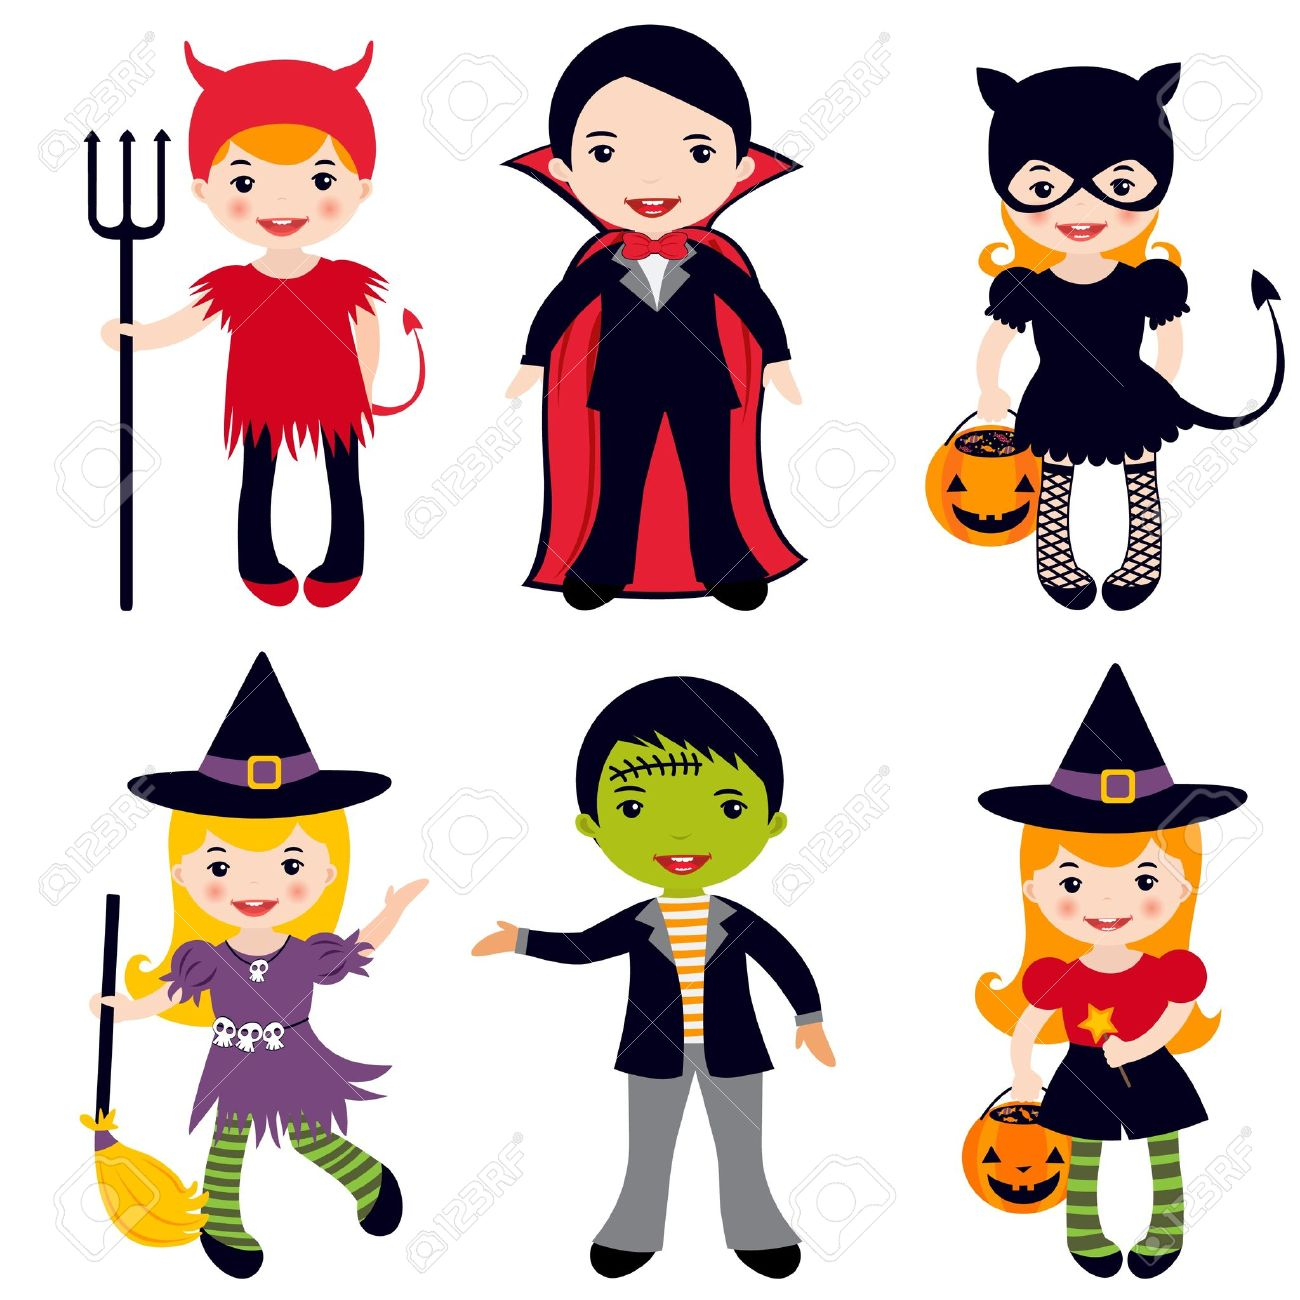 an illustration of kids in halloween costumes royalty free cliparts rh 123rf com halloween costume contest clipart halloween costume contest clipart